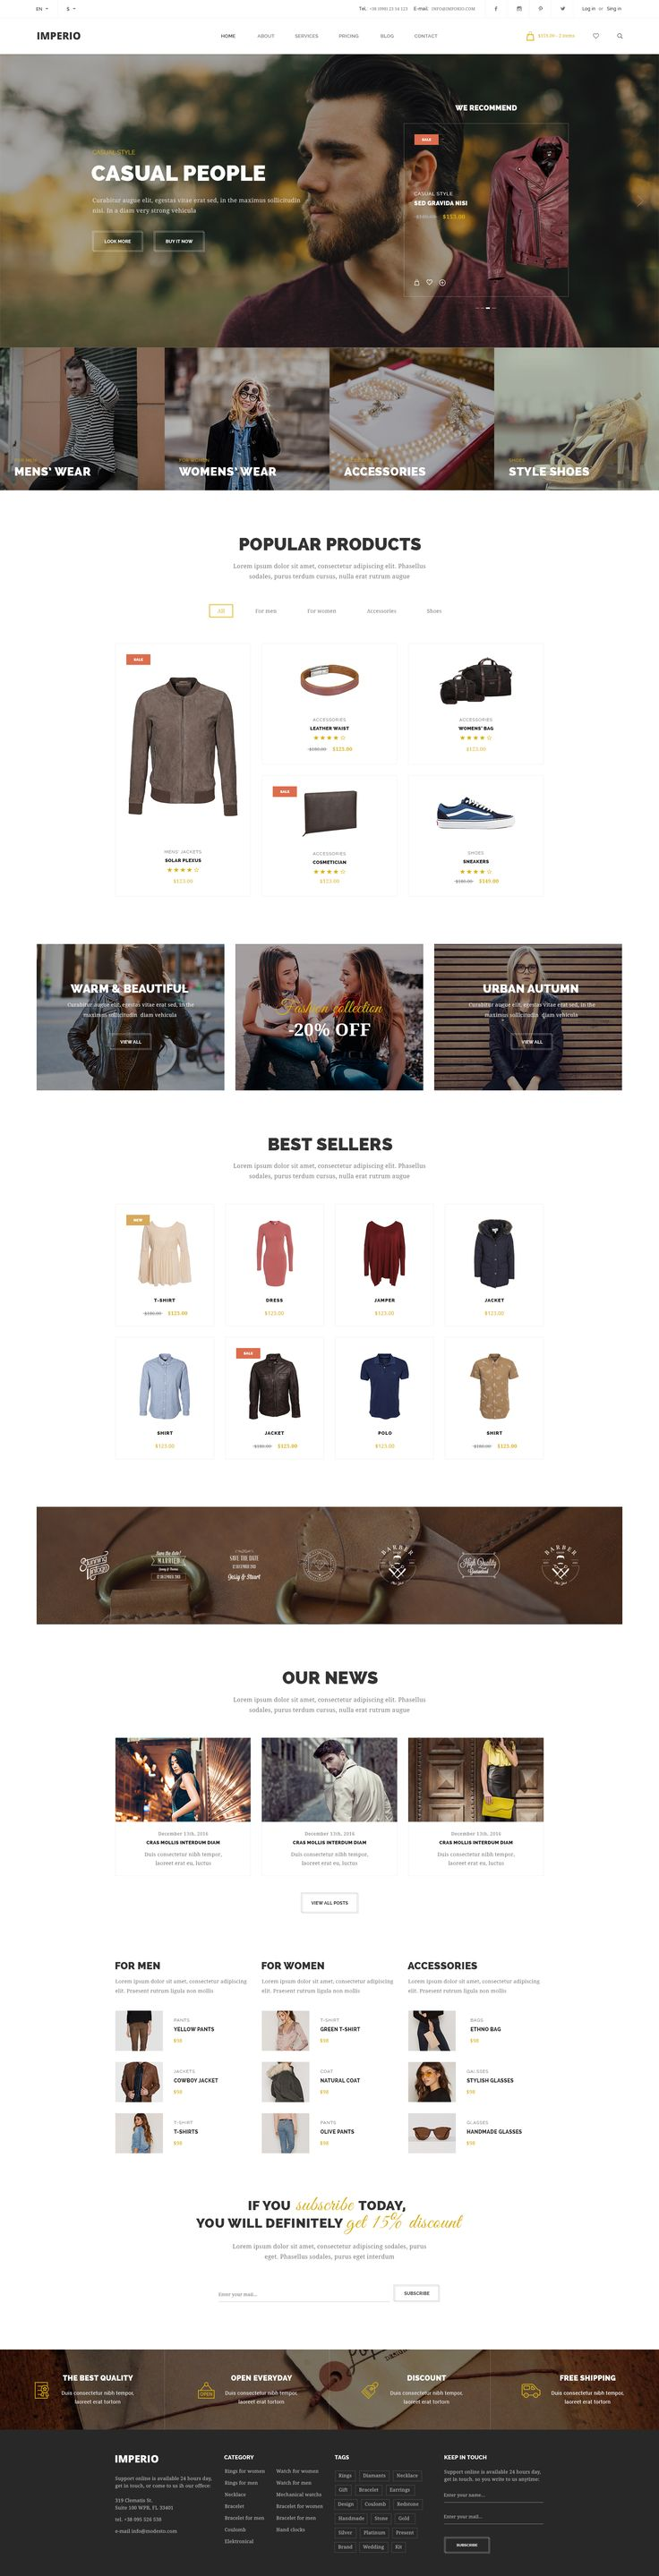 Imperio - Power Multi-Purpose eCommerce PSD Template #clothing #e-commerce #ecommerce • Download ➝ https://themeforest.net/item/imperio-power-multipurpose-ecommerce-psd-template/19588343?ref=pxcr